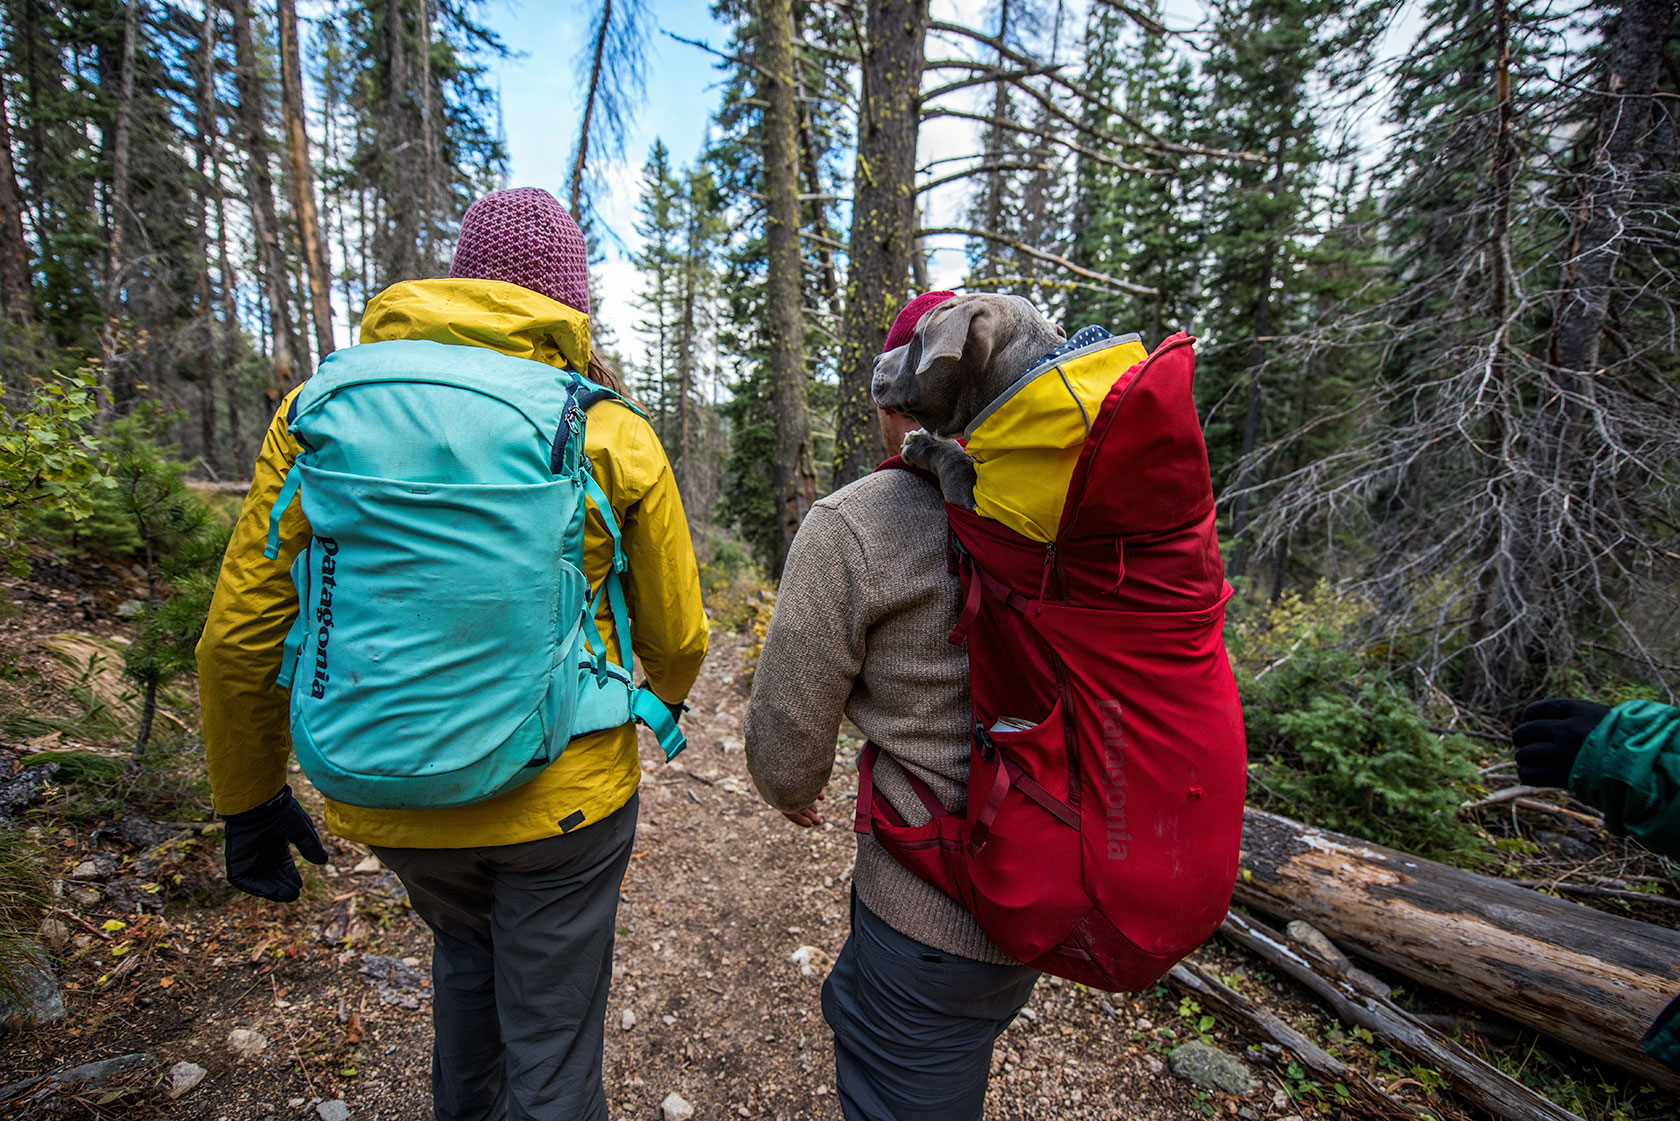 austin-trigg-patagonia-sawtooth-hiking-backpack-dog-advenure-wilderness-forest-idaho-outside-lifestyle-day-fall-weather-mountains.jpg